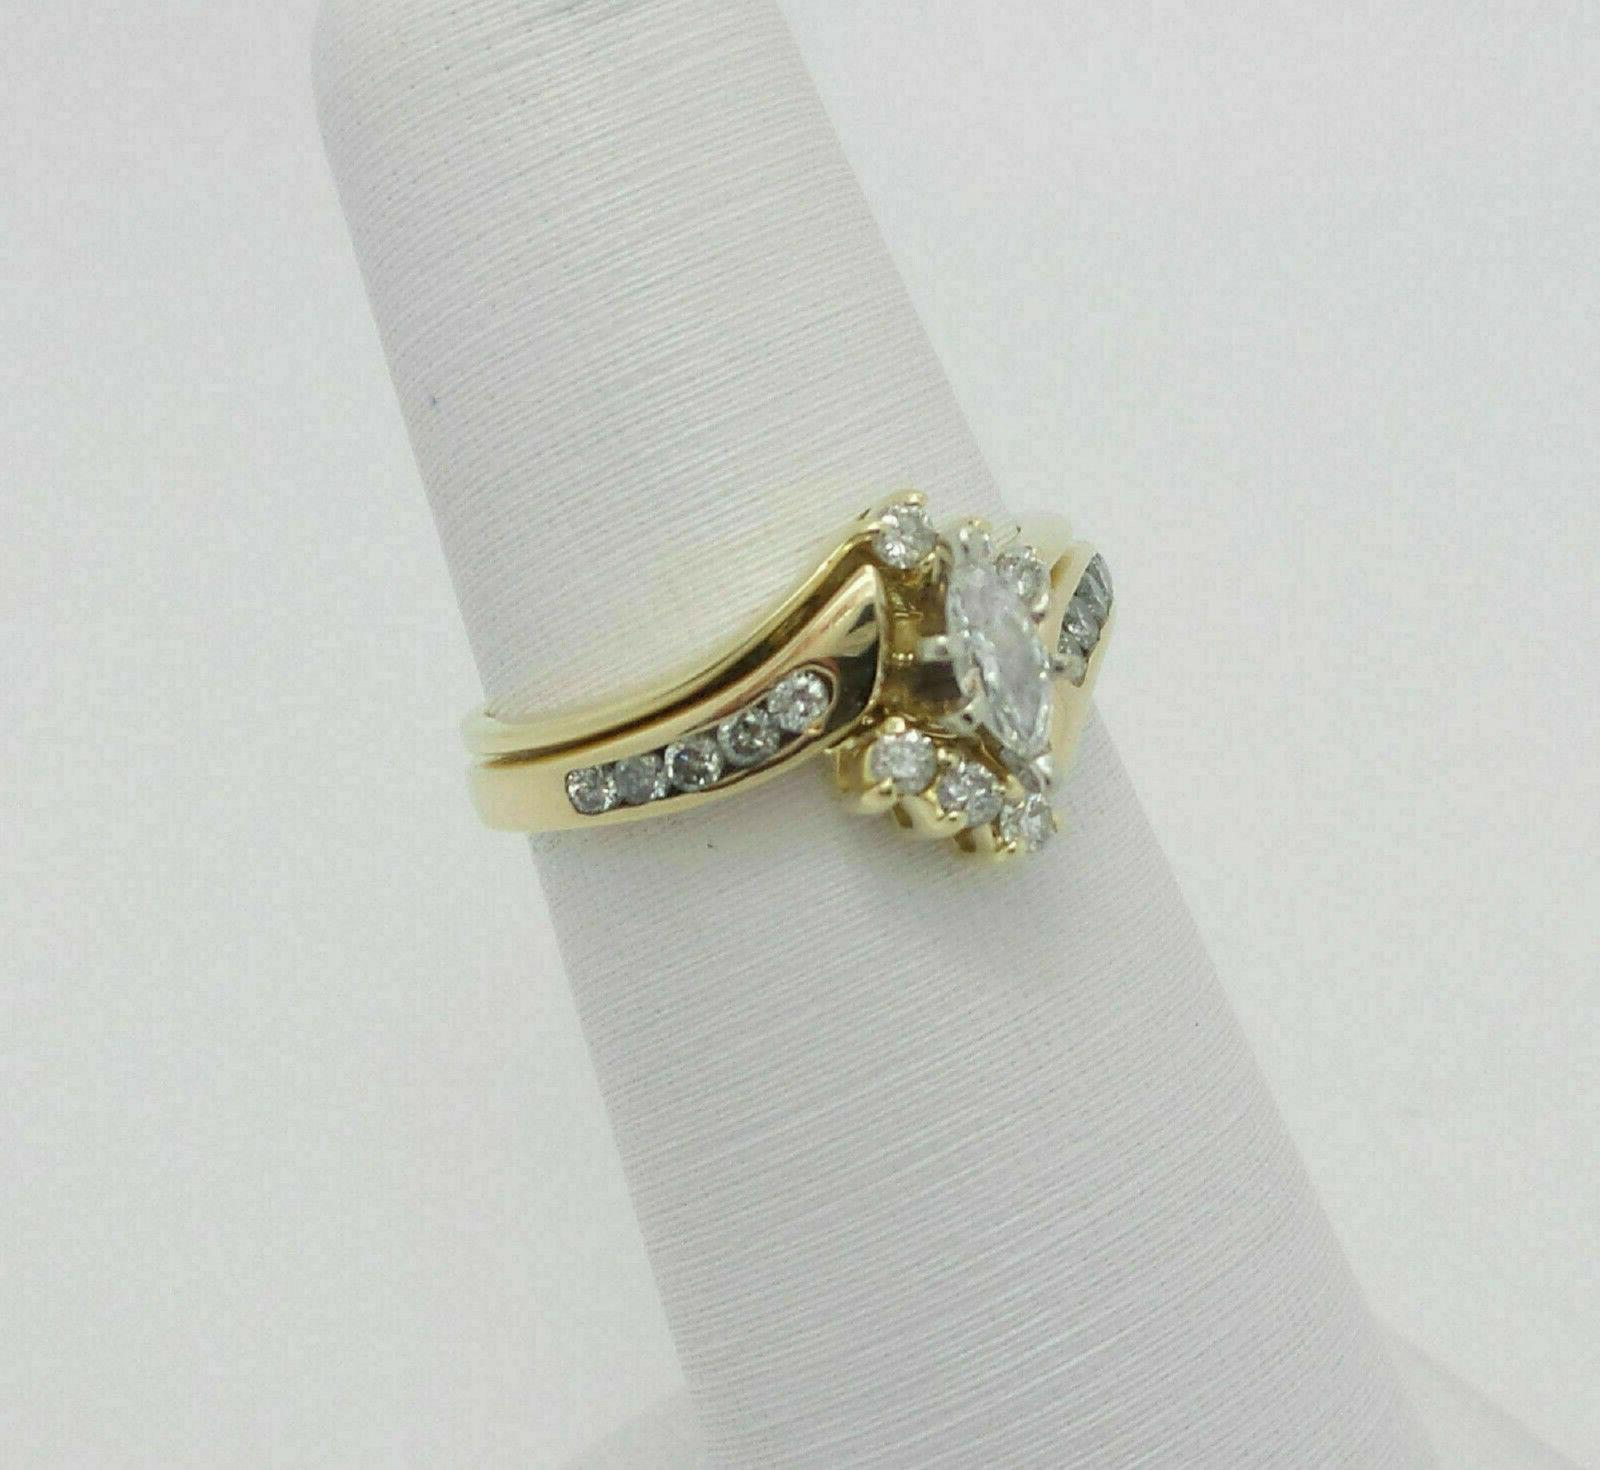 2.76Ct Marquise Cut Diamond Engagement Wedding Band Solid Yellow